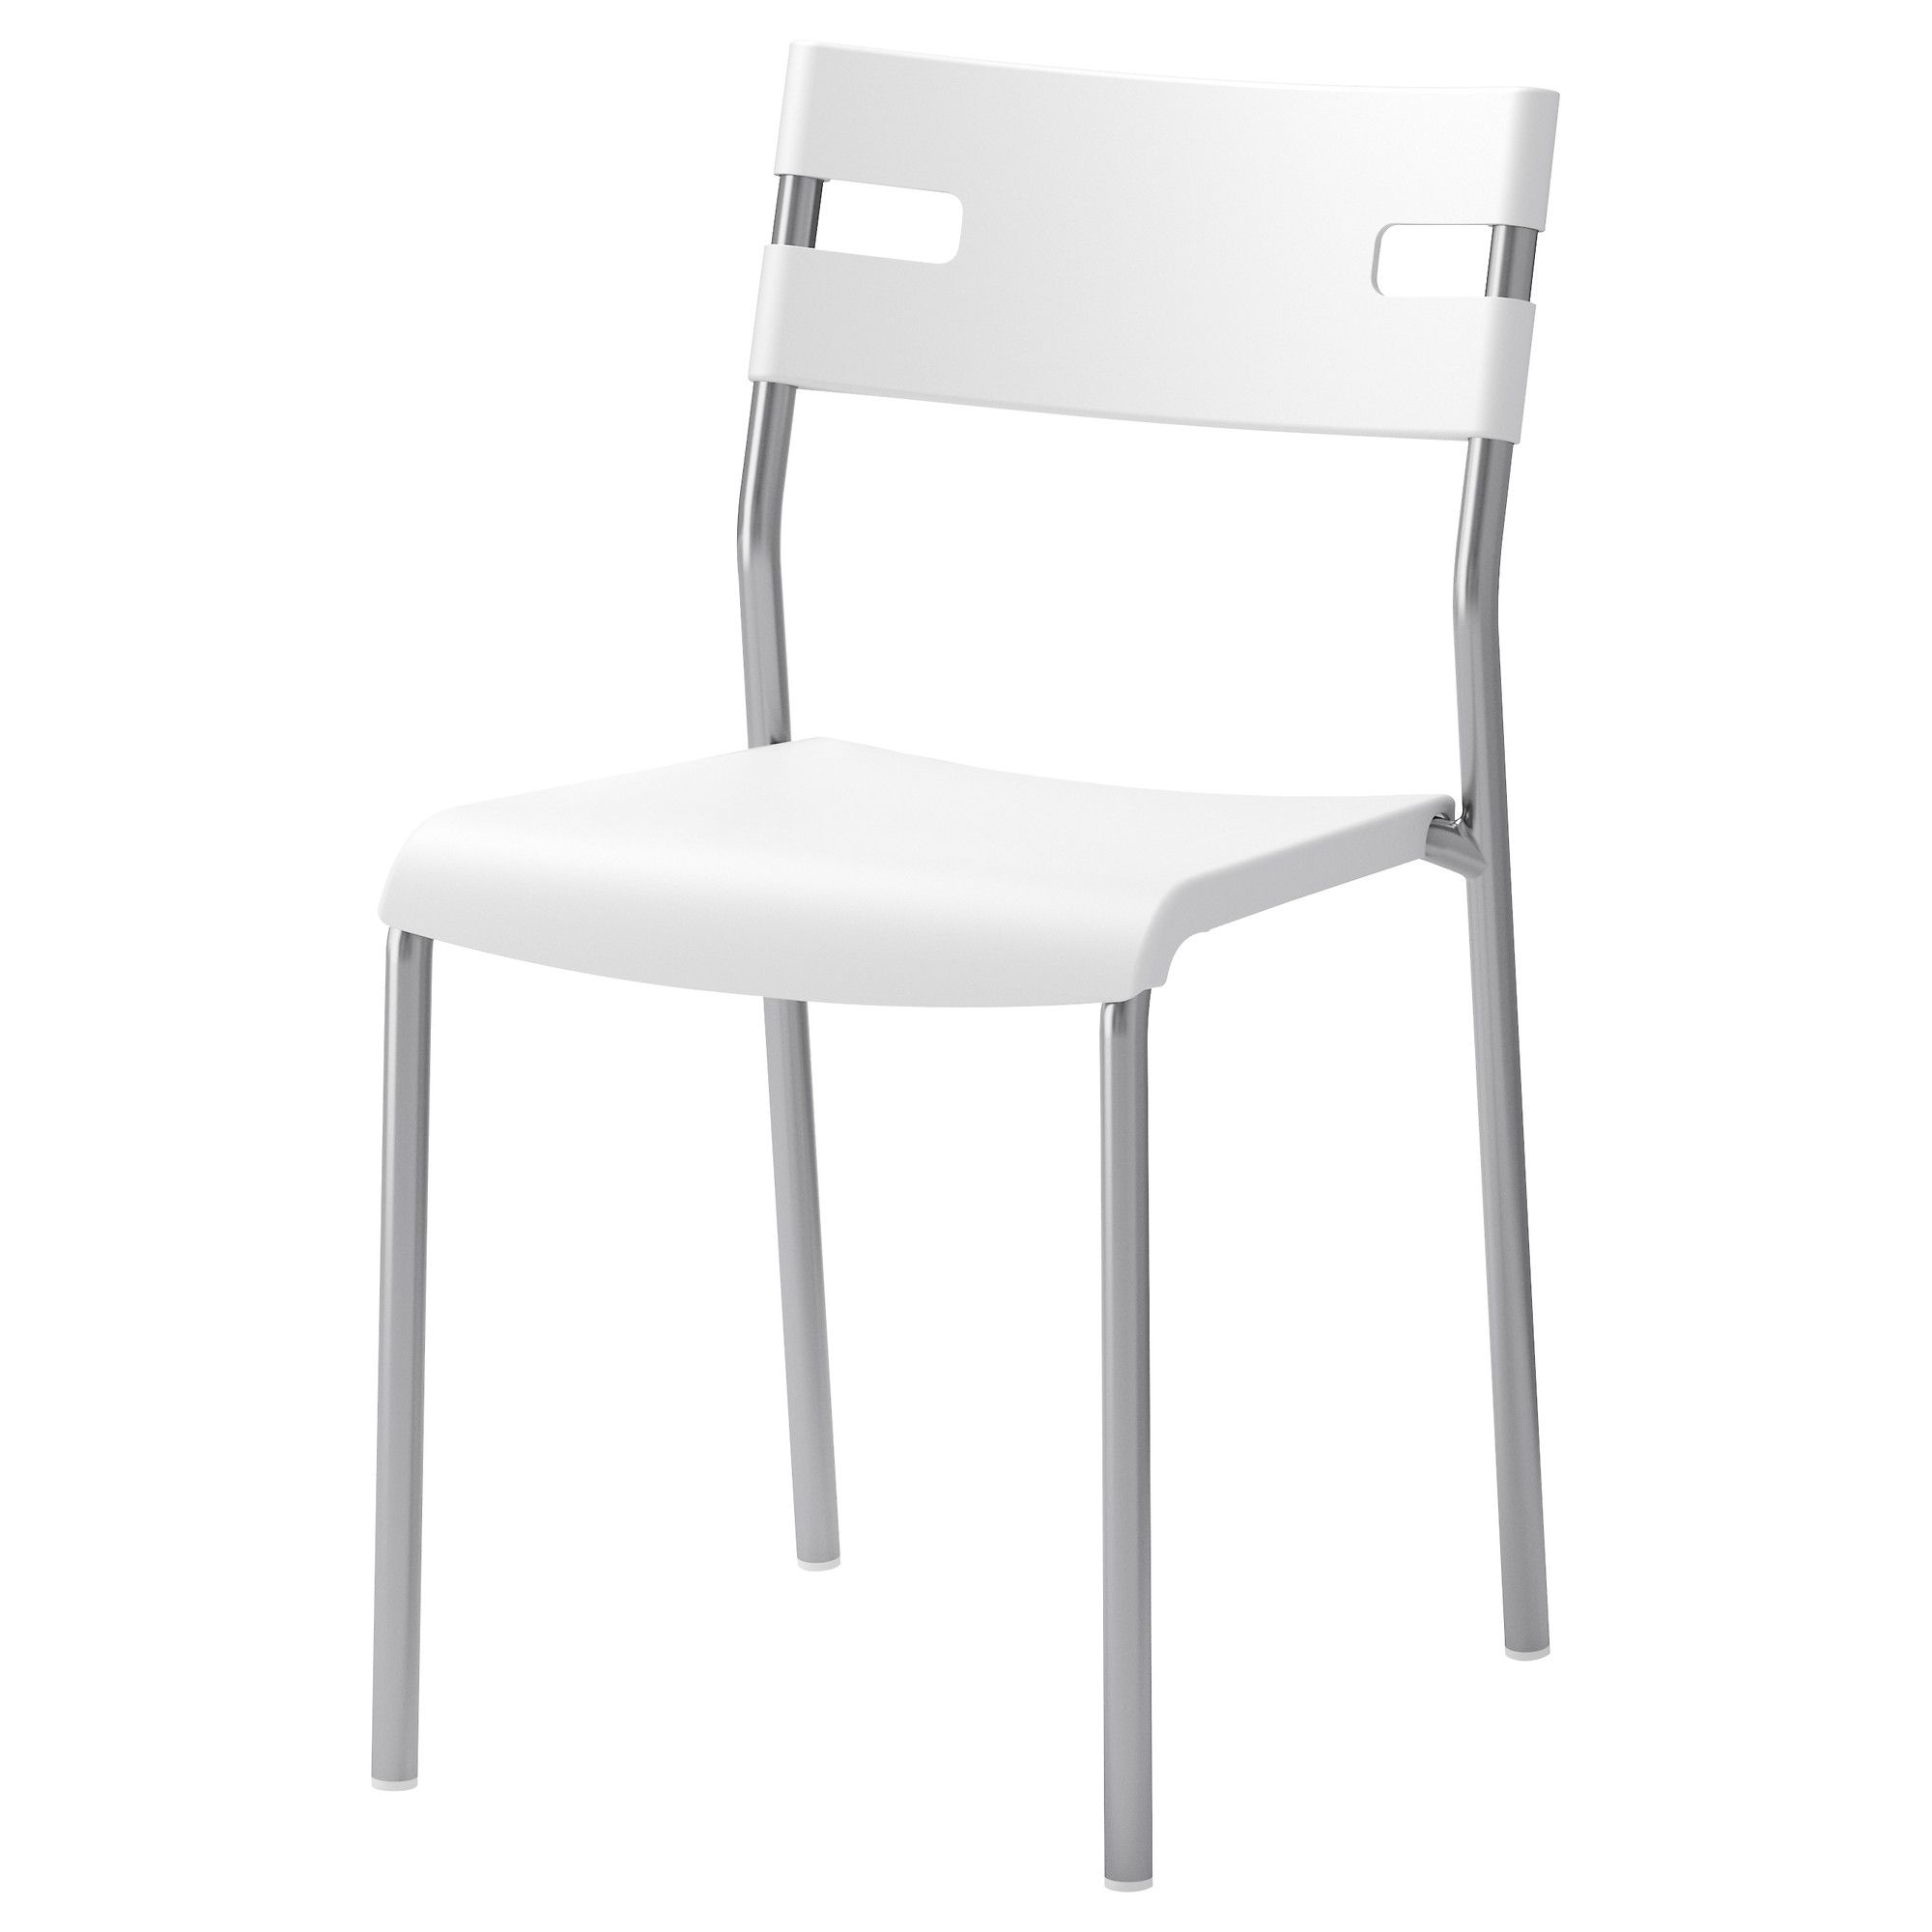 Laver Chair Ikea 10 Chrome And White Supposedly Goes With Table